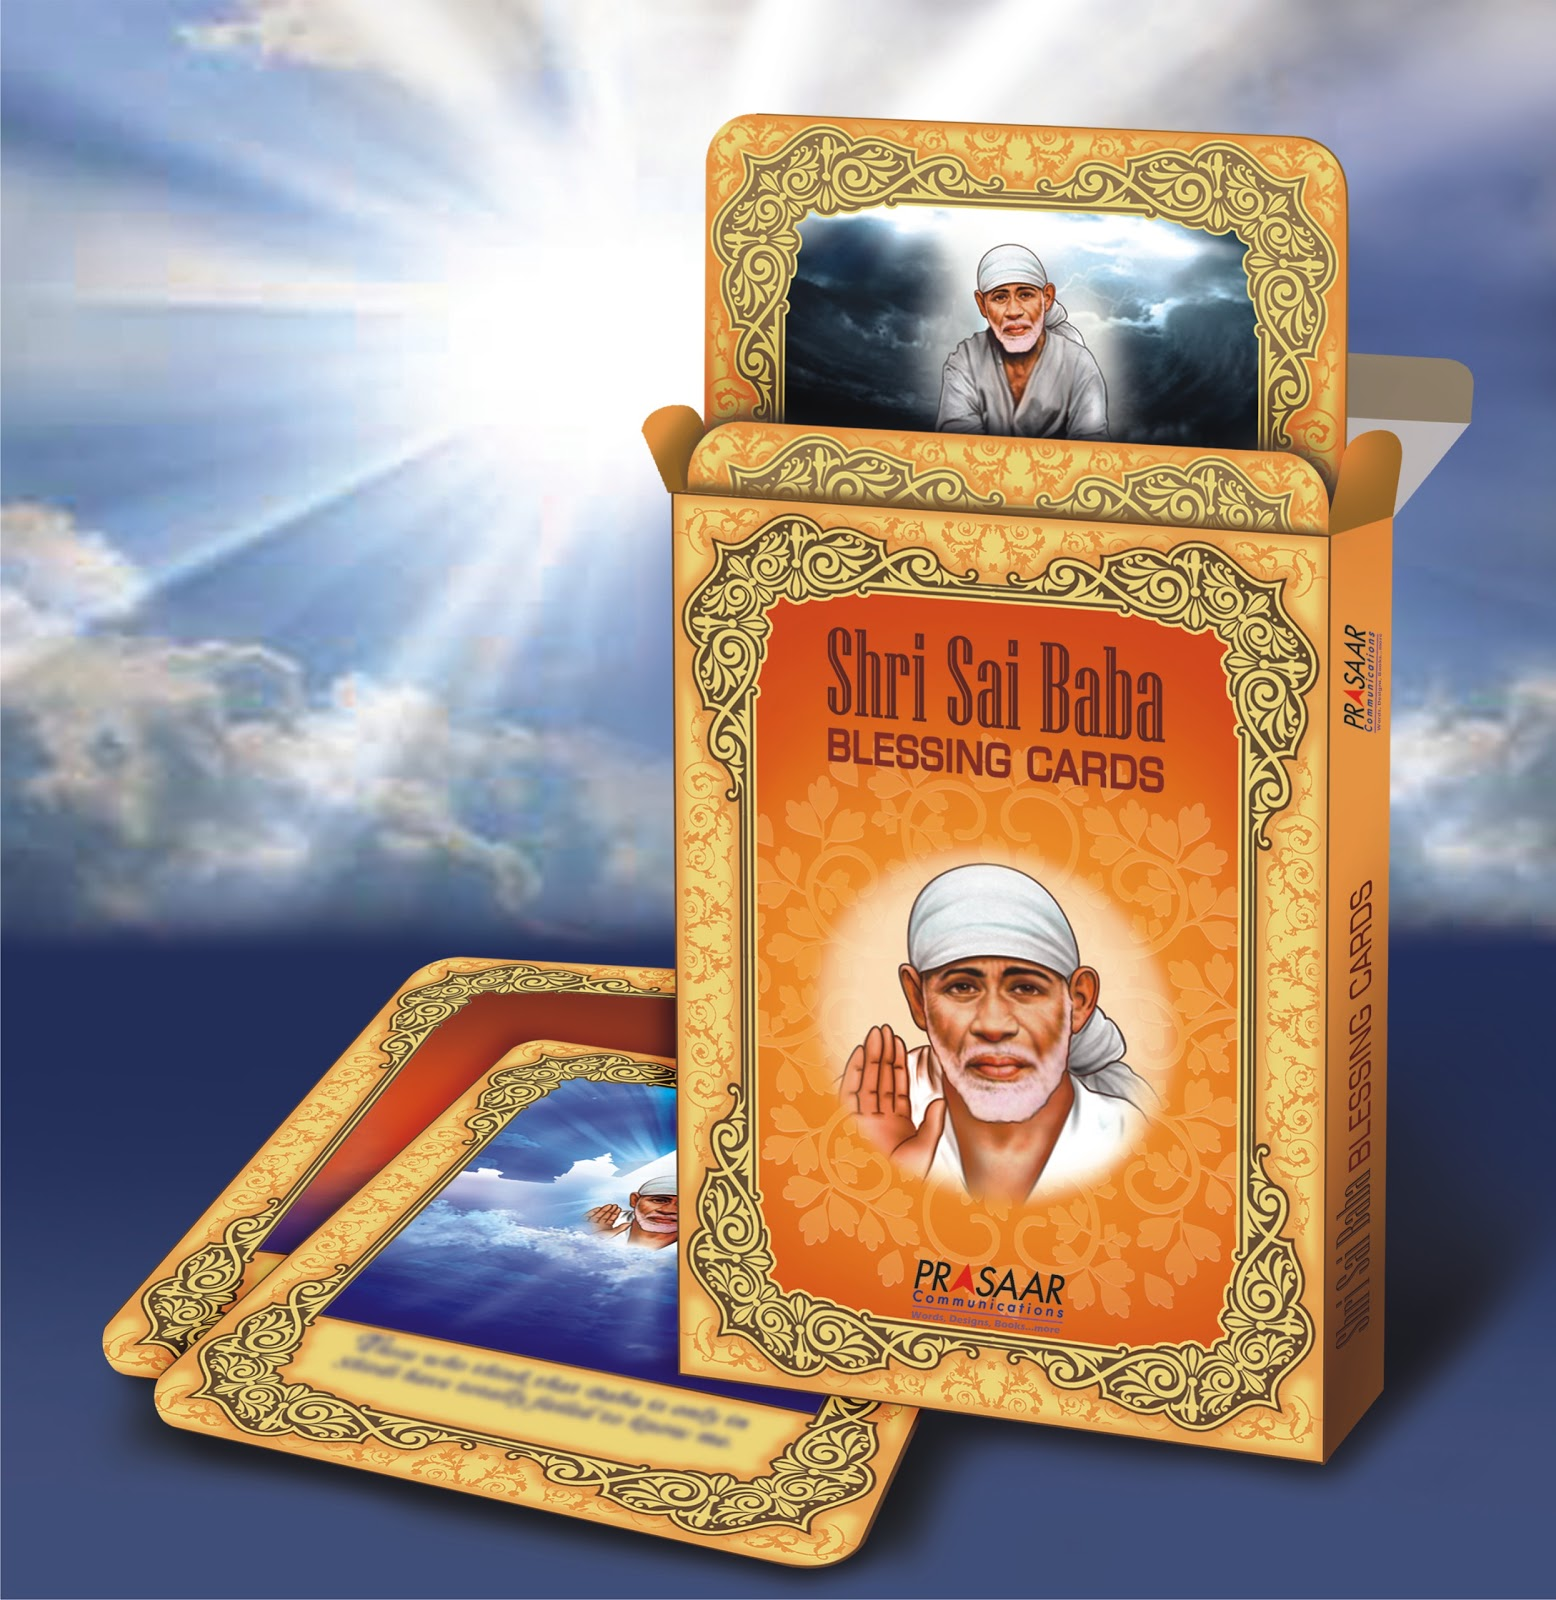 Shri Sai Baba Blessing Cards[Best Seller]